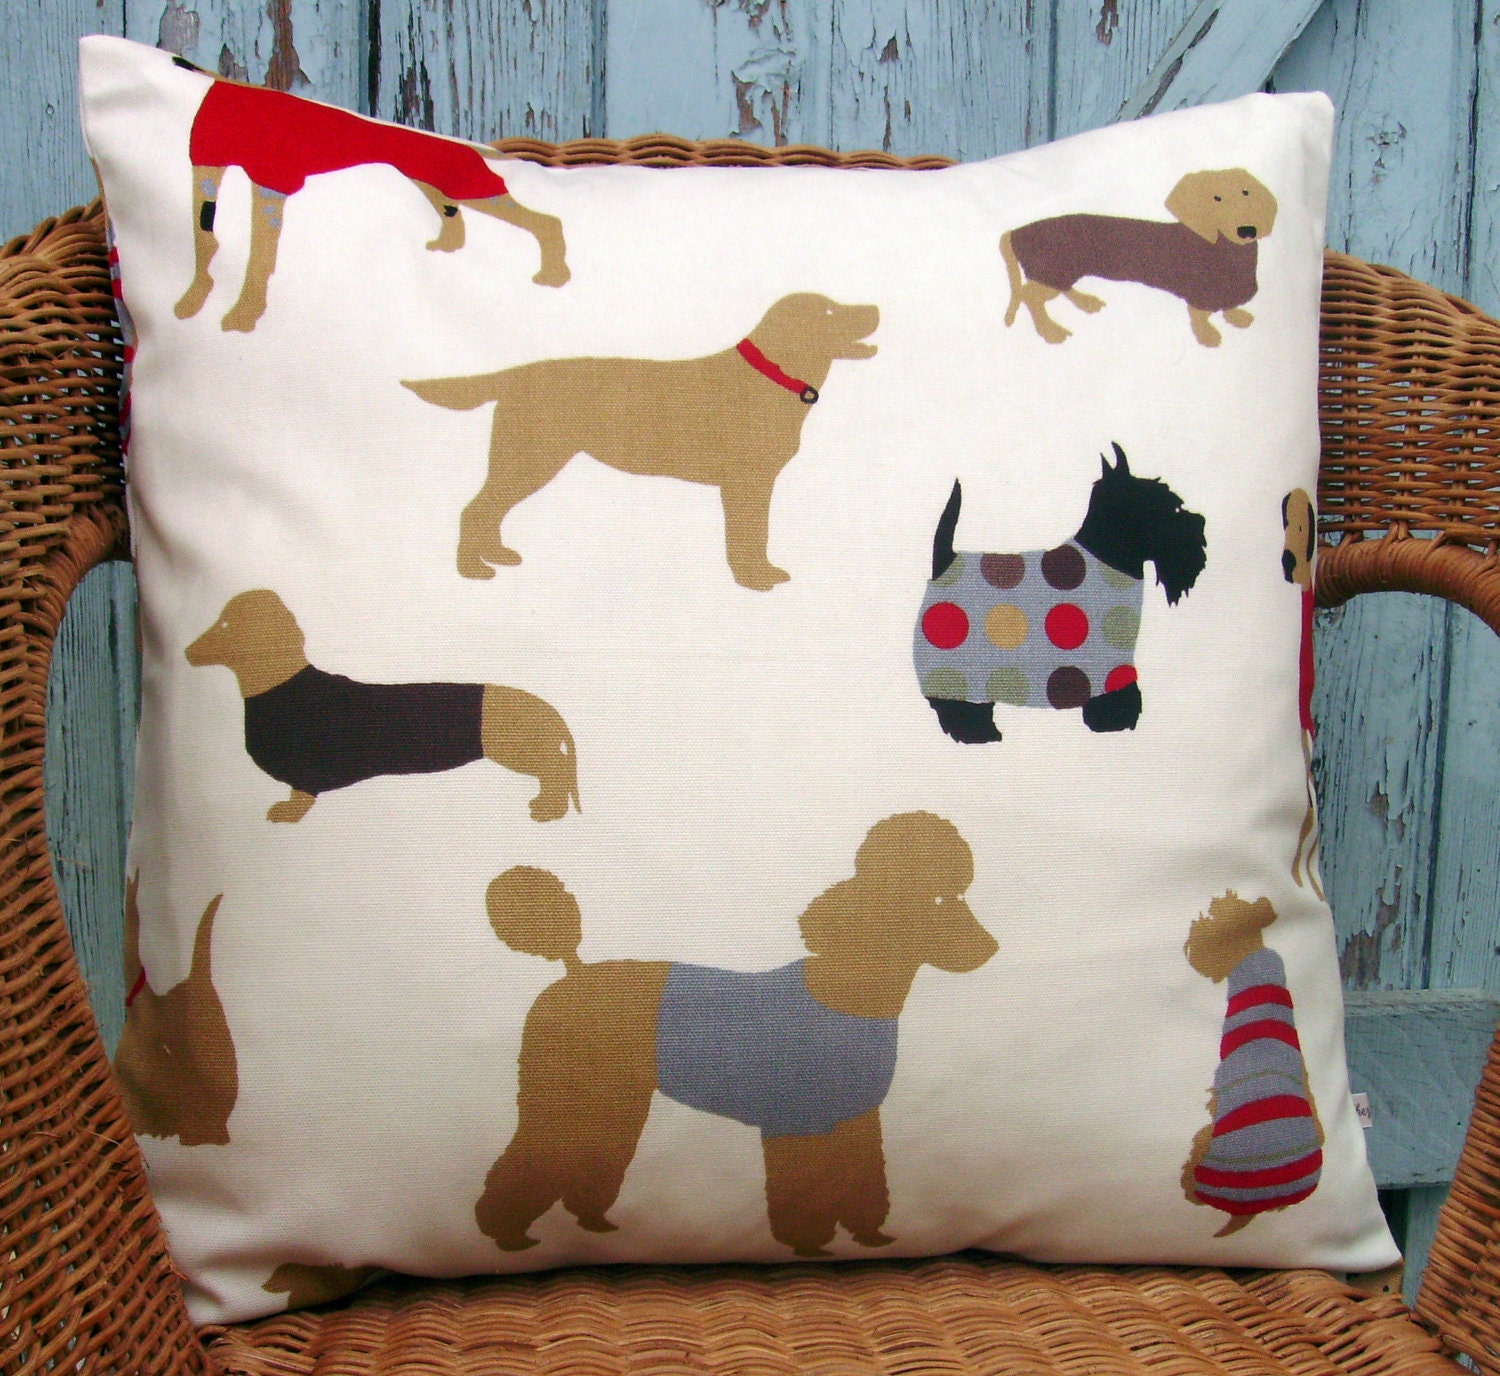 Decorative Pillow With Dog : dog pillow cover decorative pillow cover puppy by chezlele